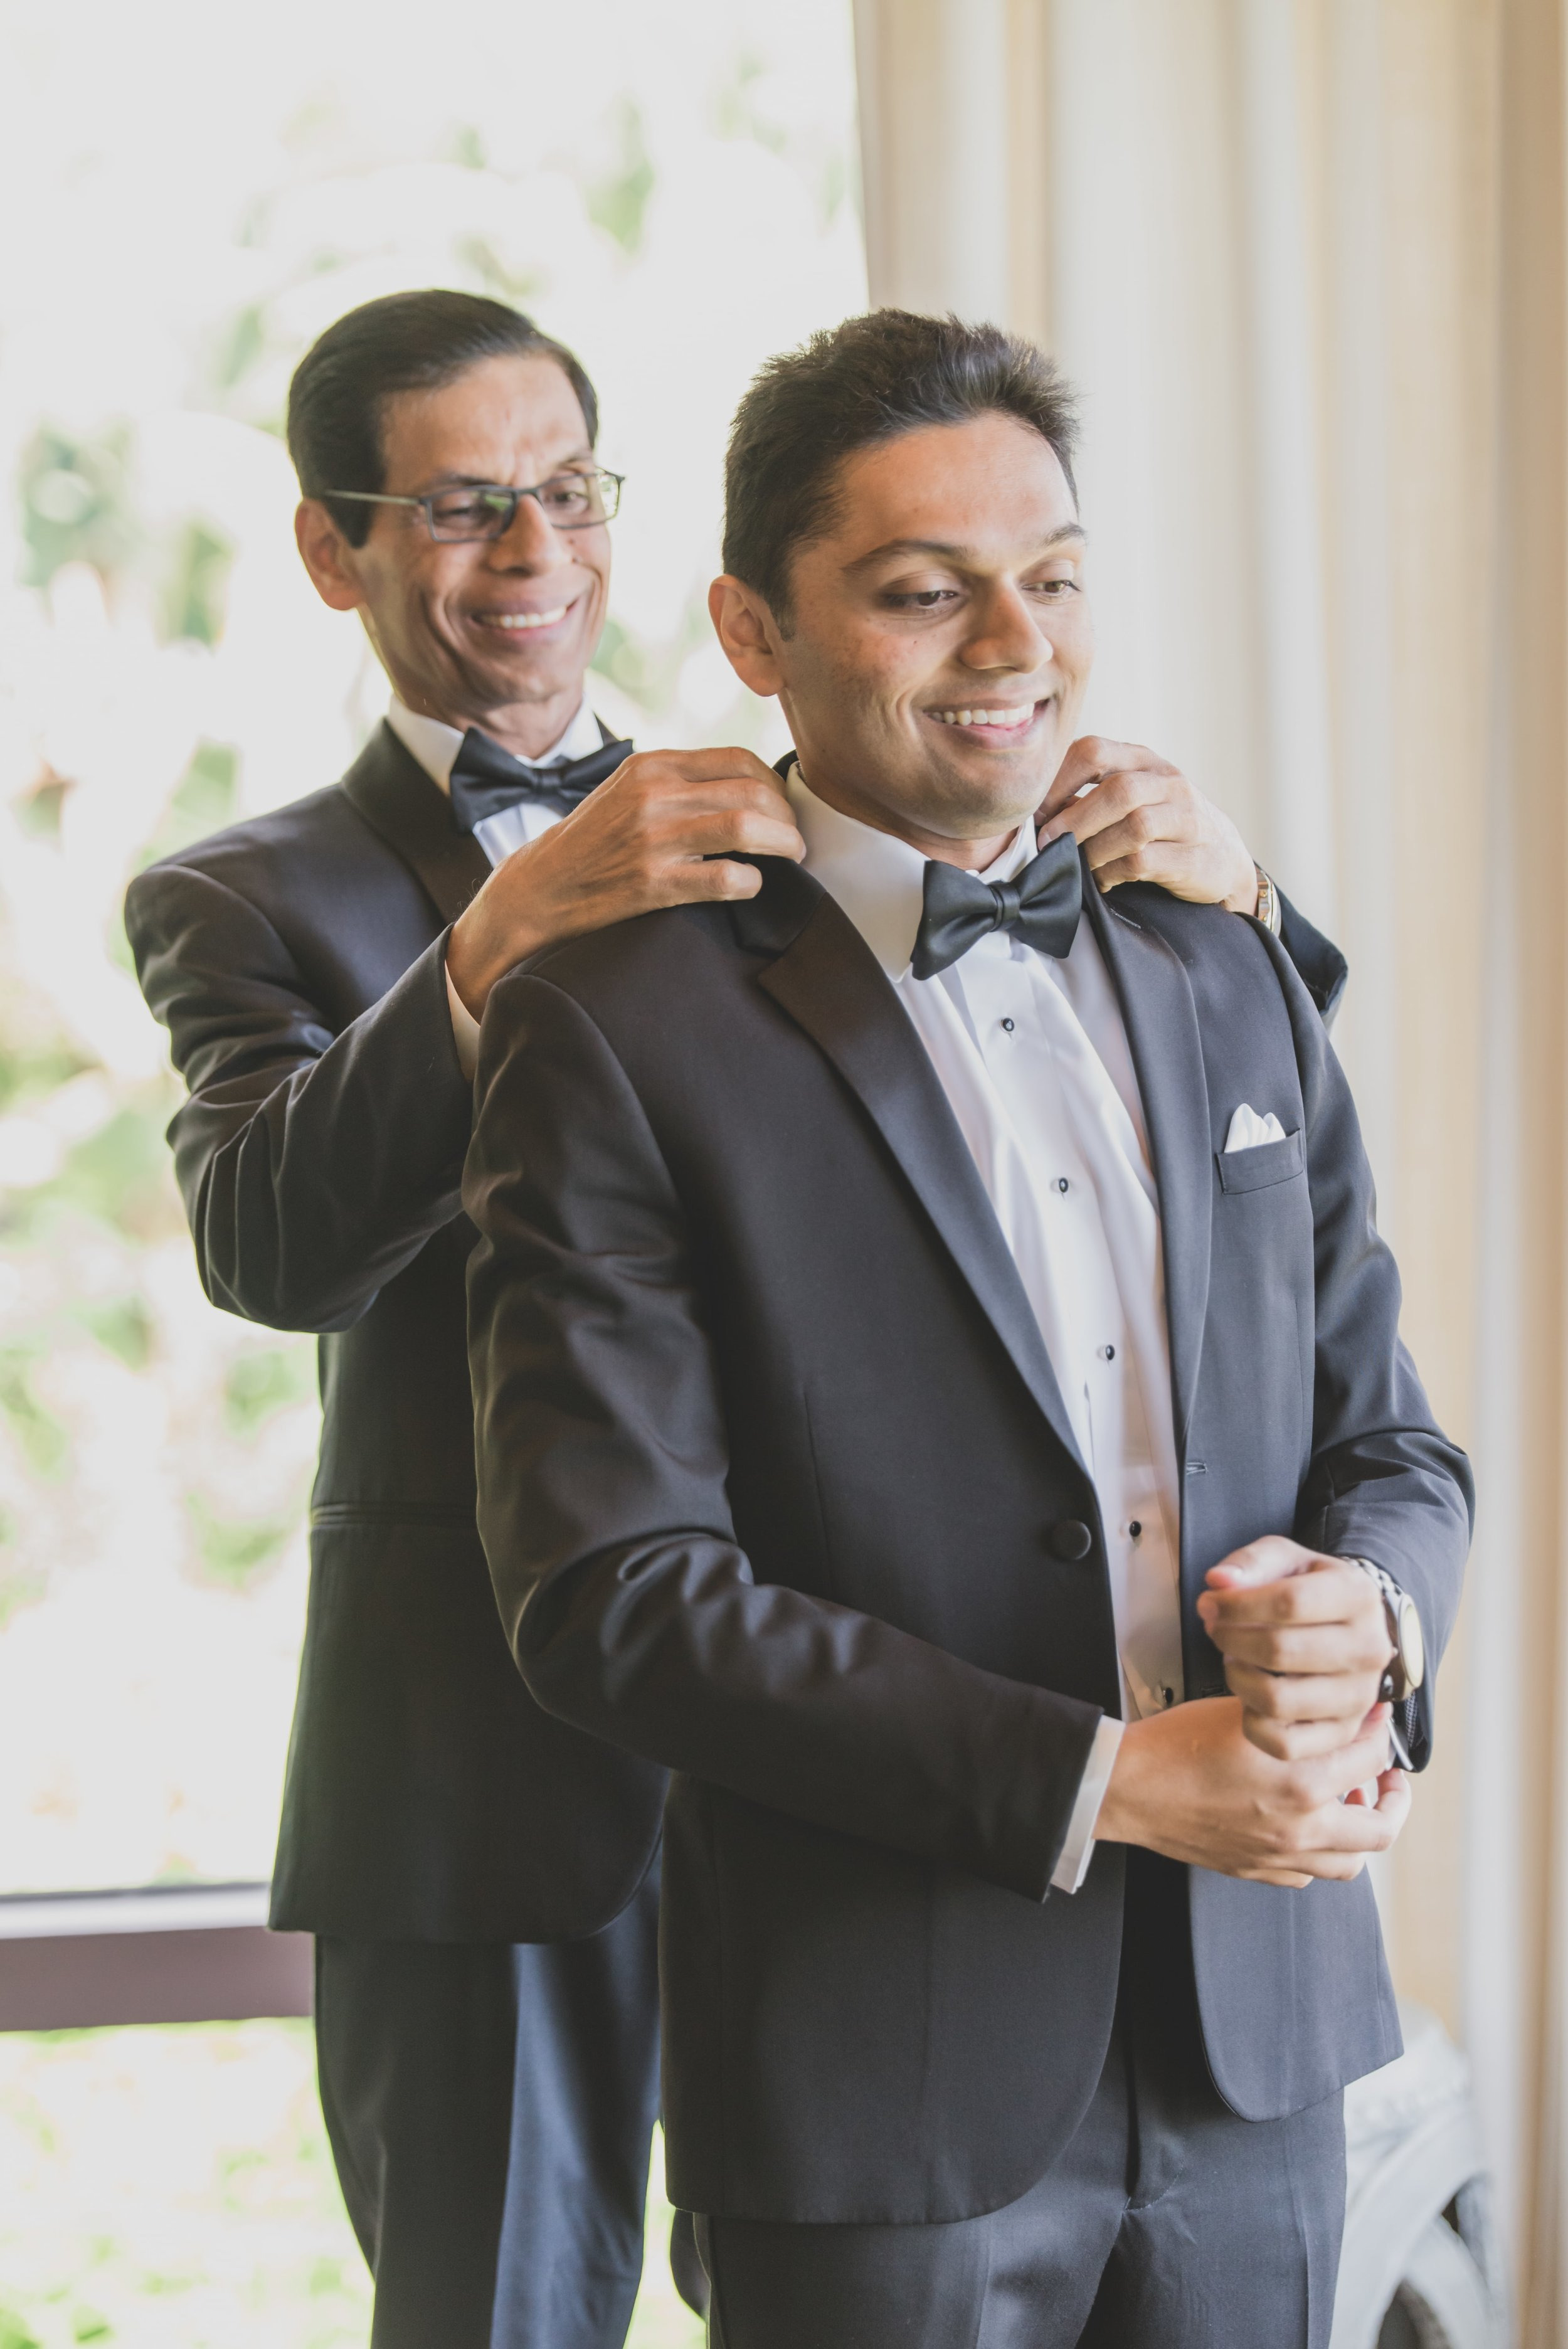 Wedding Photography - Pacific Palisades, CA - Bel Air Bay Club - The grooms father straightening the grooms collar as he gets ready.